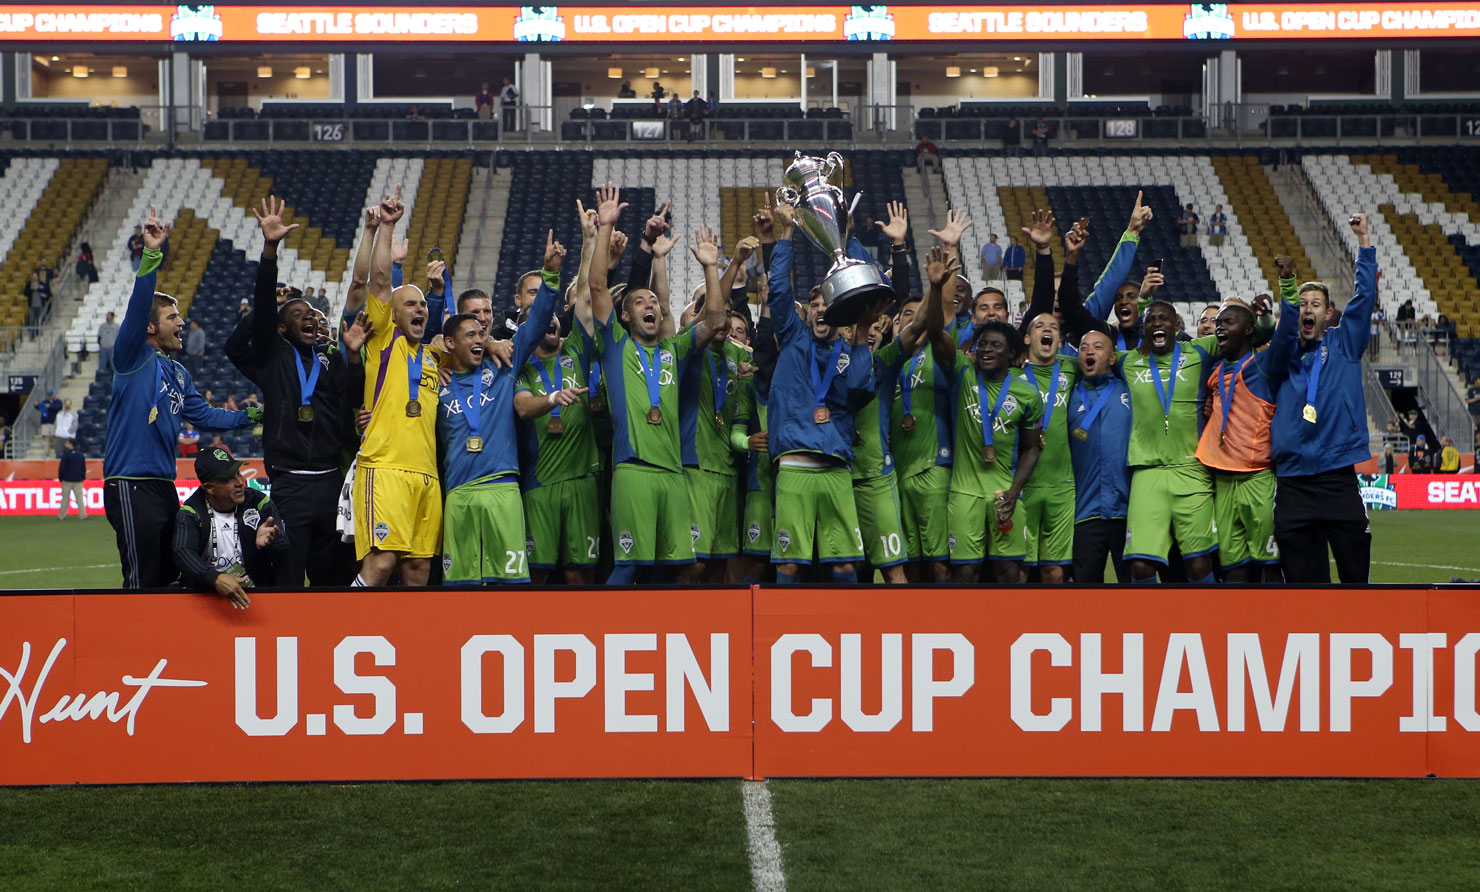 sounders-champs